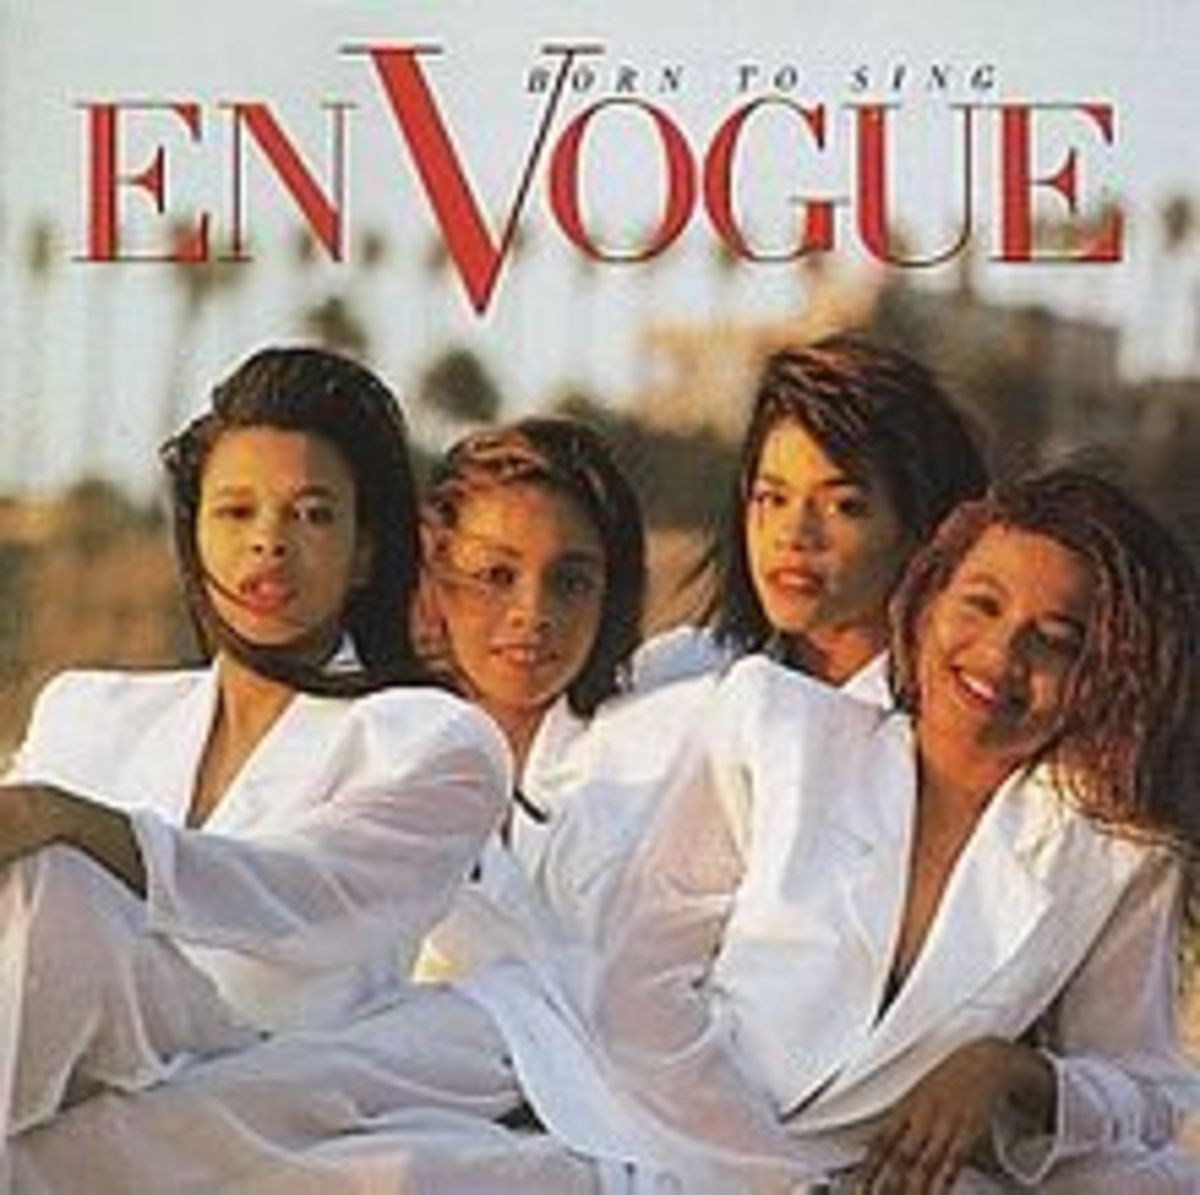 In 1990, En Vogue released their debut album Born to Sing which featured the soulful and sexy single Hold On.